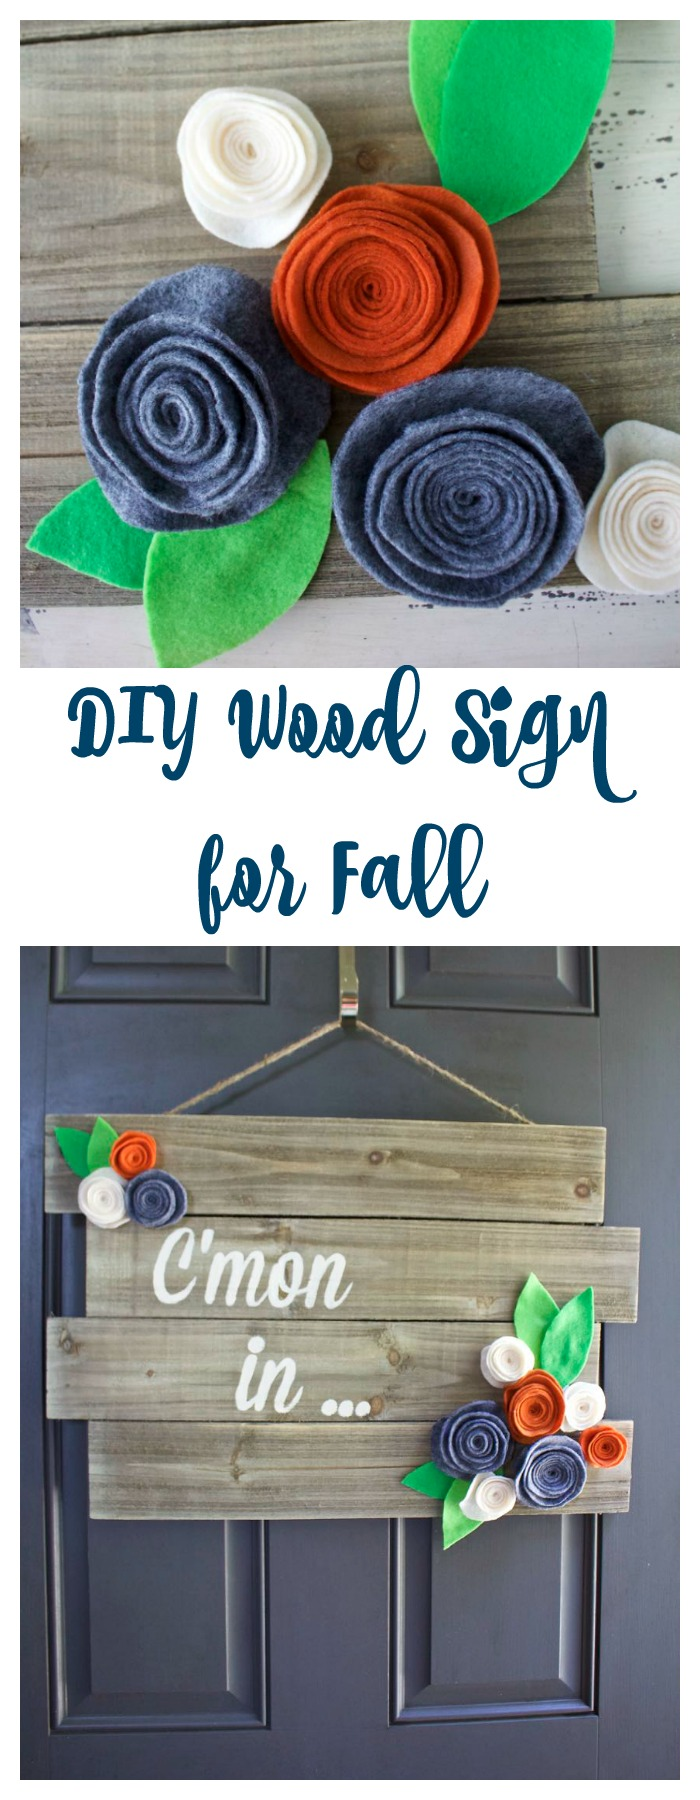 DIY Wood Sign for Fall. Fall decor. Fall door hanger. Fall wreath.